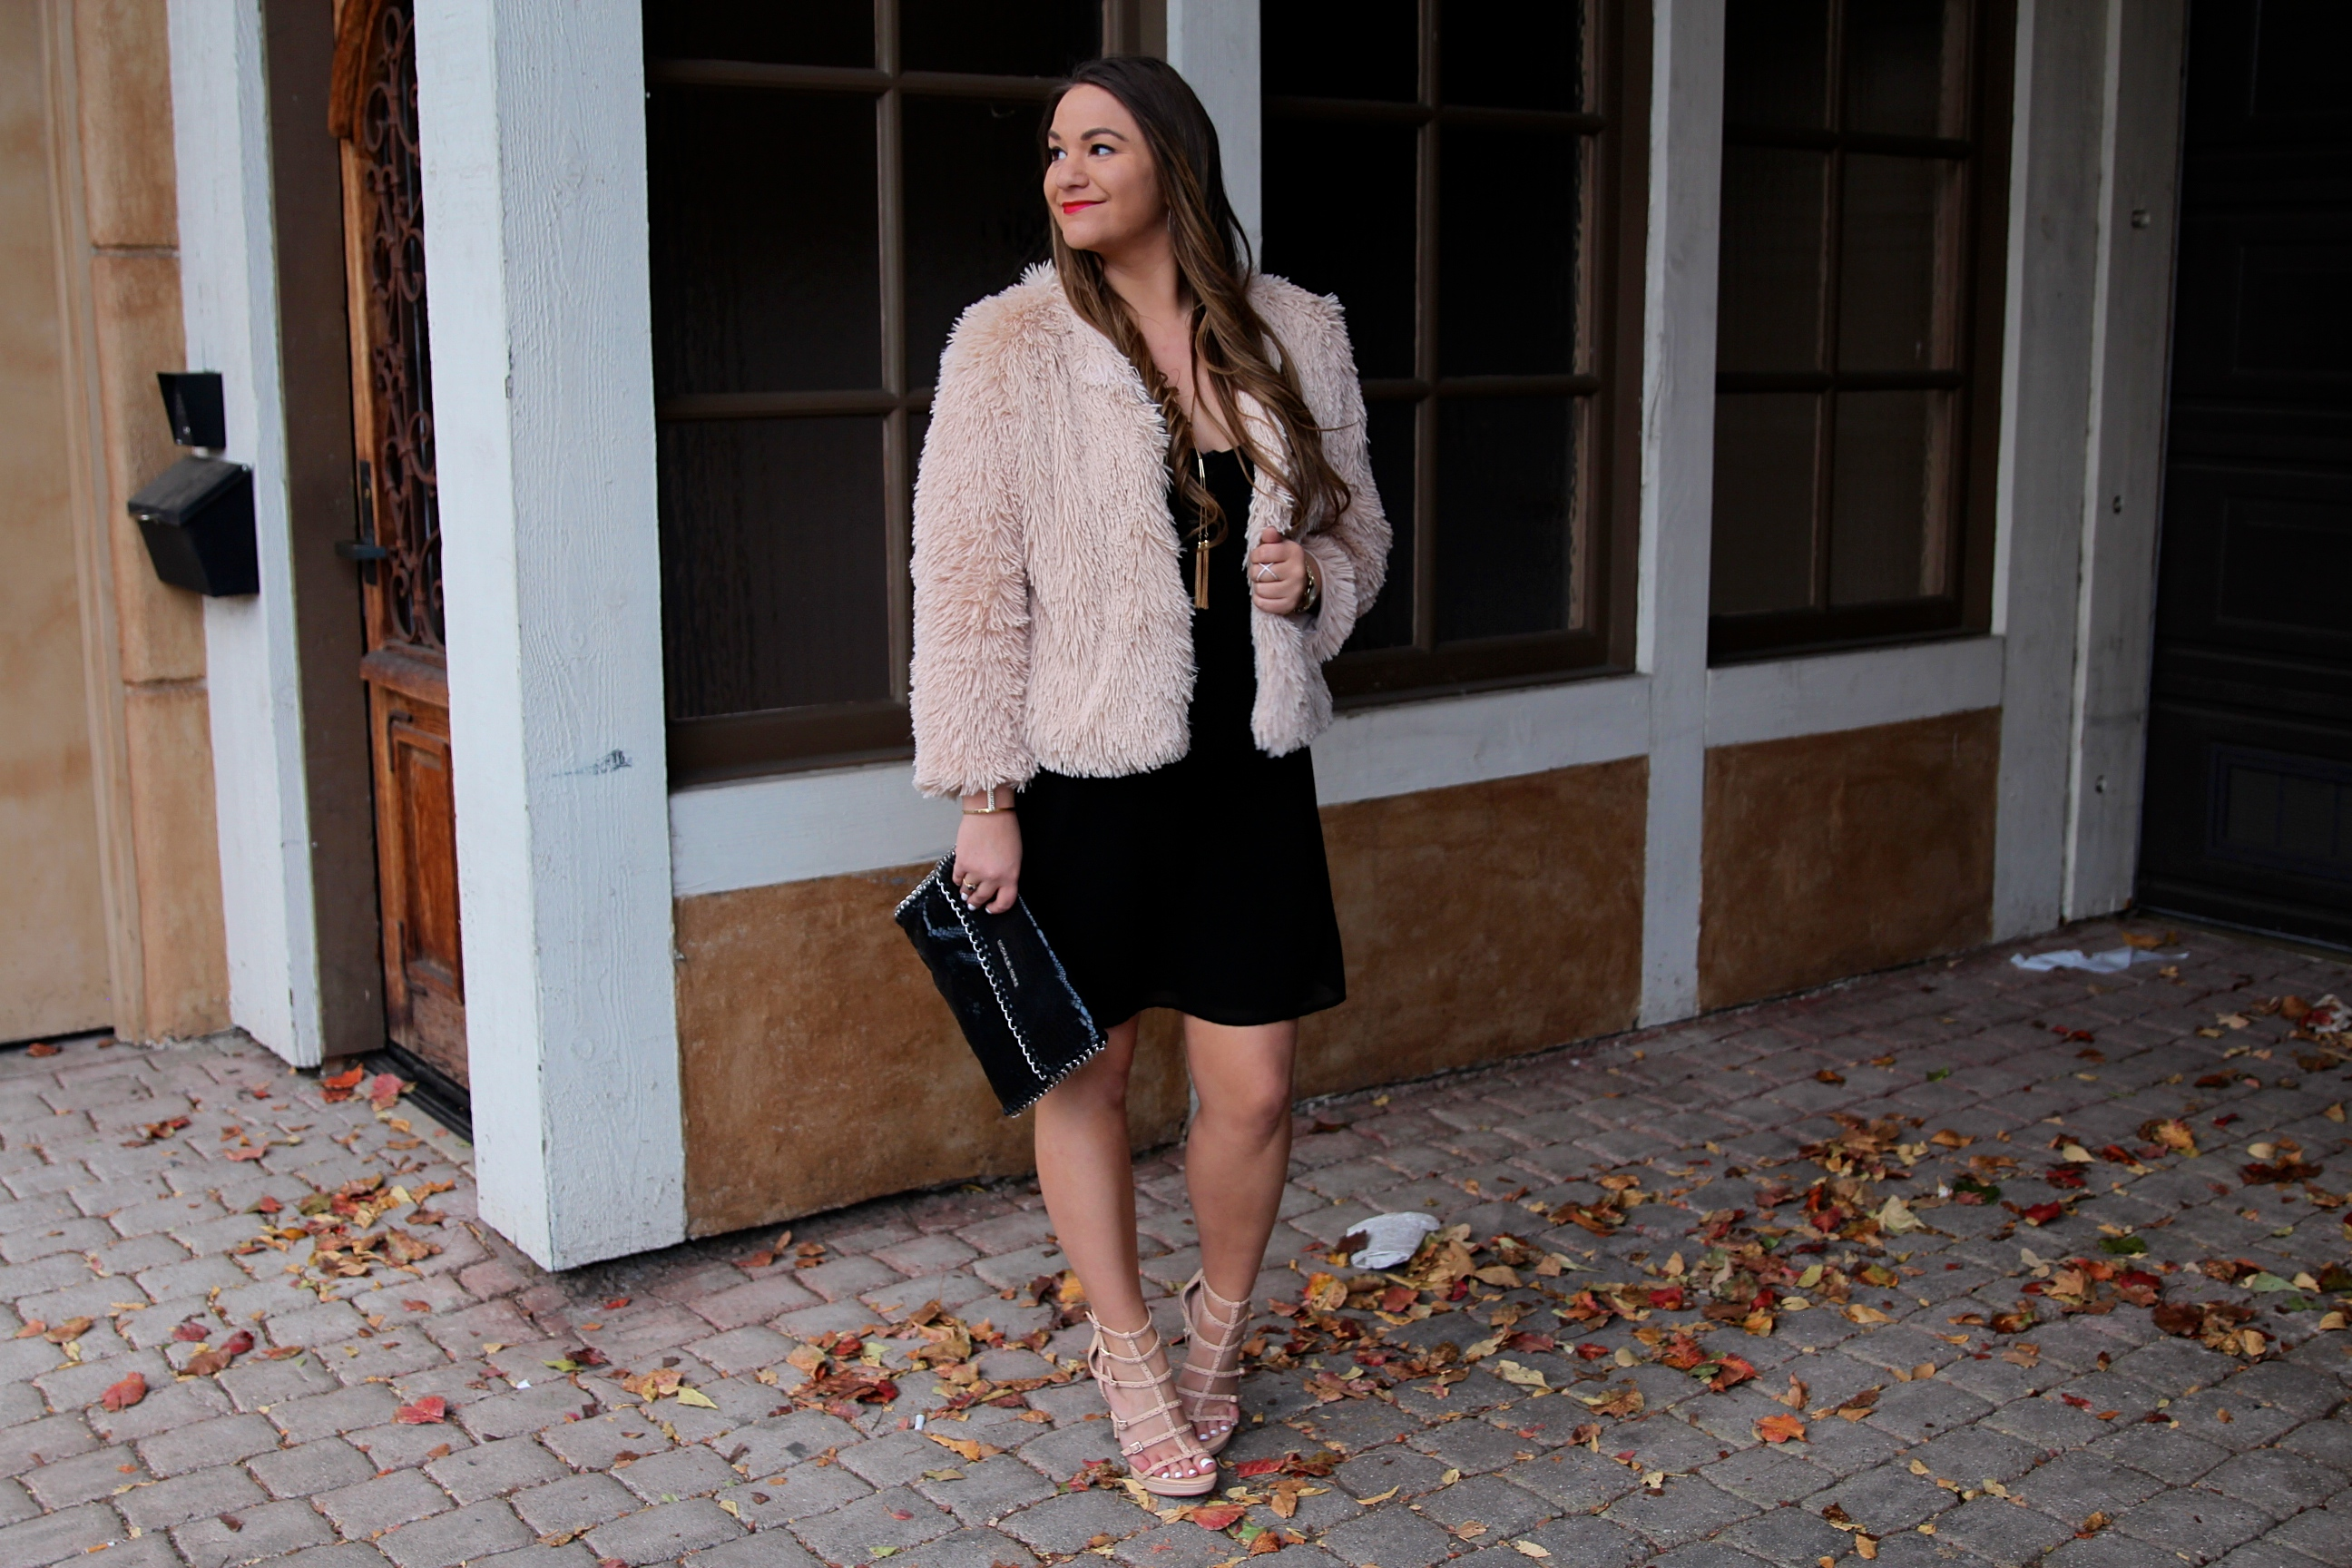 missyonmadison, melissa tierney, wayf black dress, wayf dress, nye style, nye 2016, what to wear for nye, new years eve style, nye glam, black spaghetti strap dress, black chiffon dress, pink shaggy coat, blush shaggy coat, pink faux fur coat, blush faux fur coat, vince camuto heels, vince camuto gladiator heels, elizabeth arden lipstick, nye beauty, red lipstick, michael kors clutch, black snakeskin clutch, michael kors black snakeskin clutch, gold lariat necklace, lariat necklace, brunette hair, nye hair, la blogger,